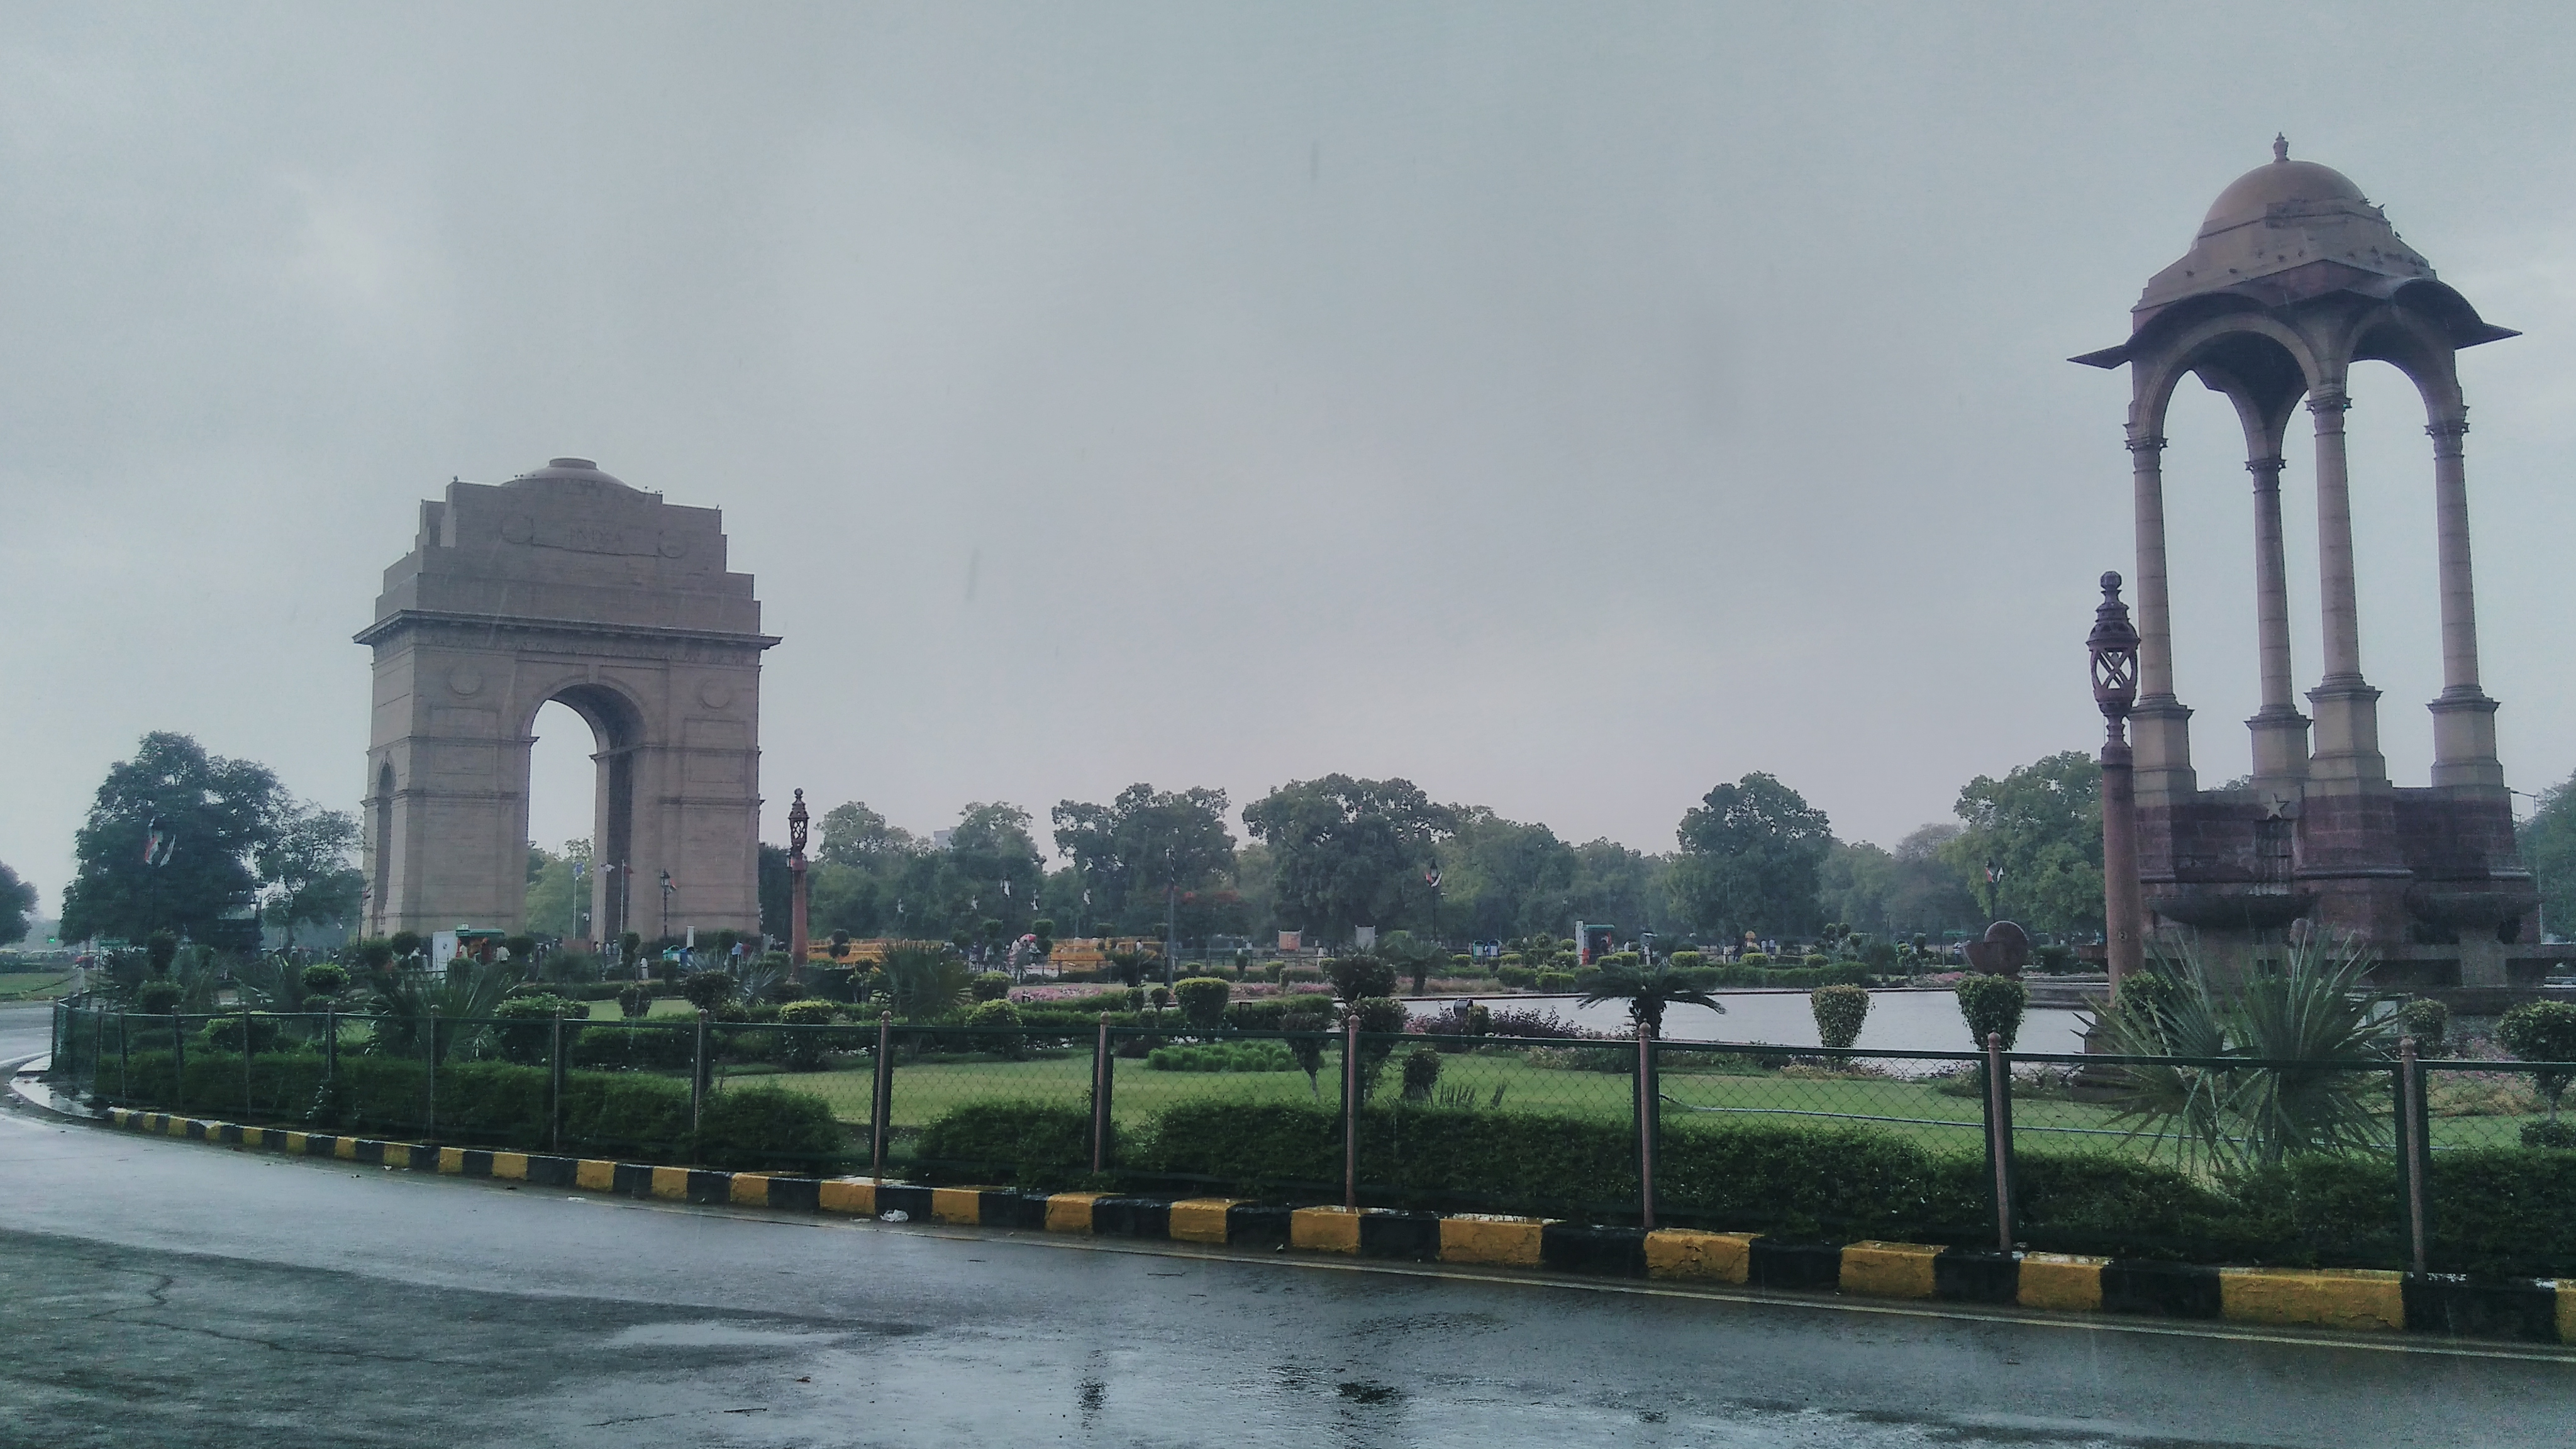 Delhi weather updates: Heavy rain cools down the temperature on this weekend